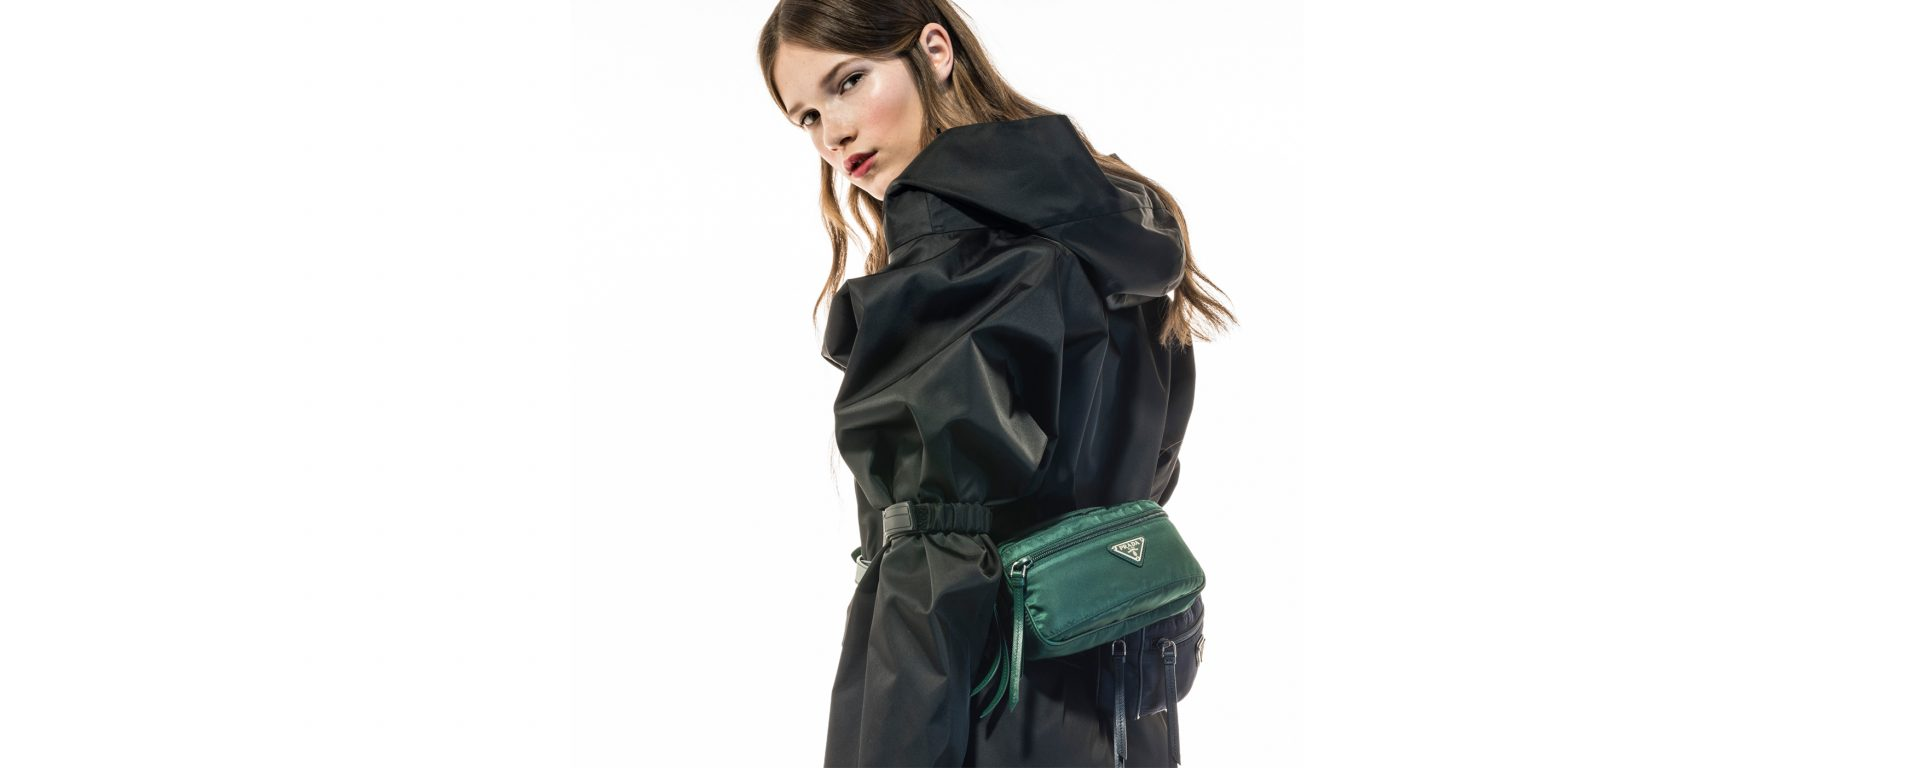 07abf01b0fbc Prada Nylon Vela has all the fanny packs you ll ever need. Bianca Husodo.  Standard Article Hero